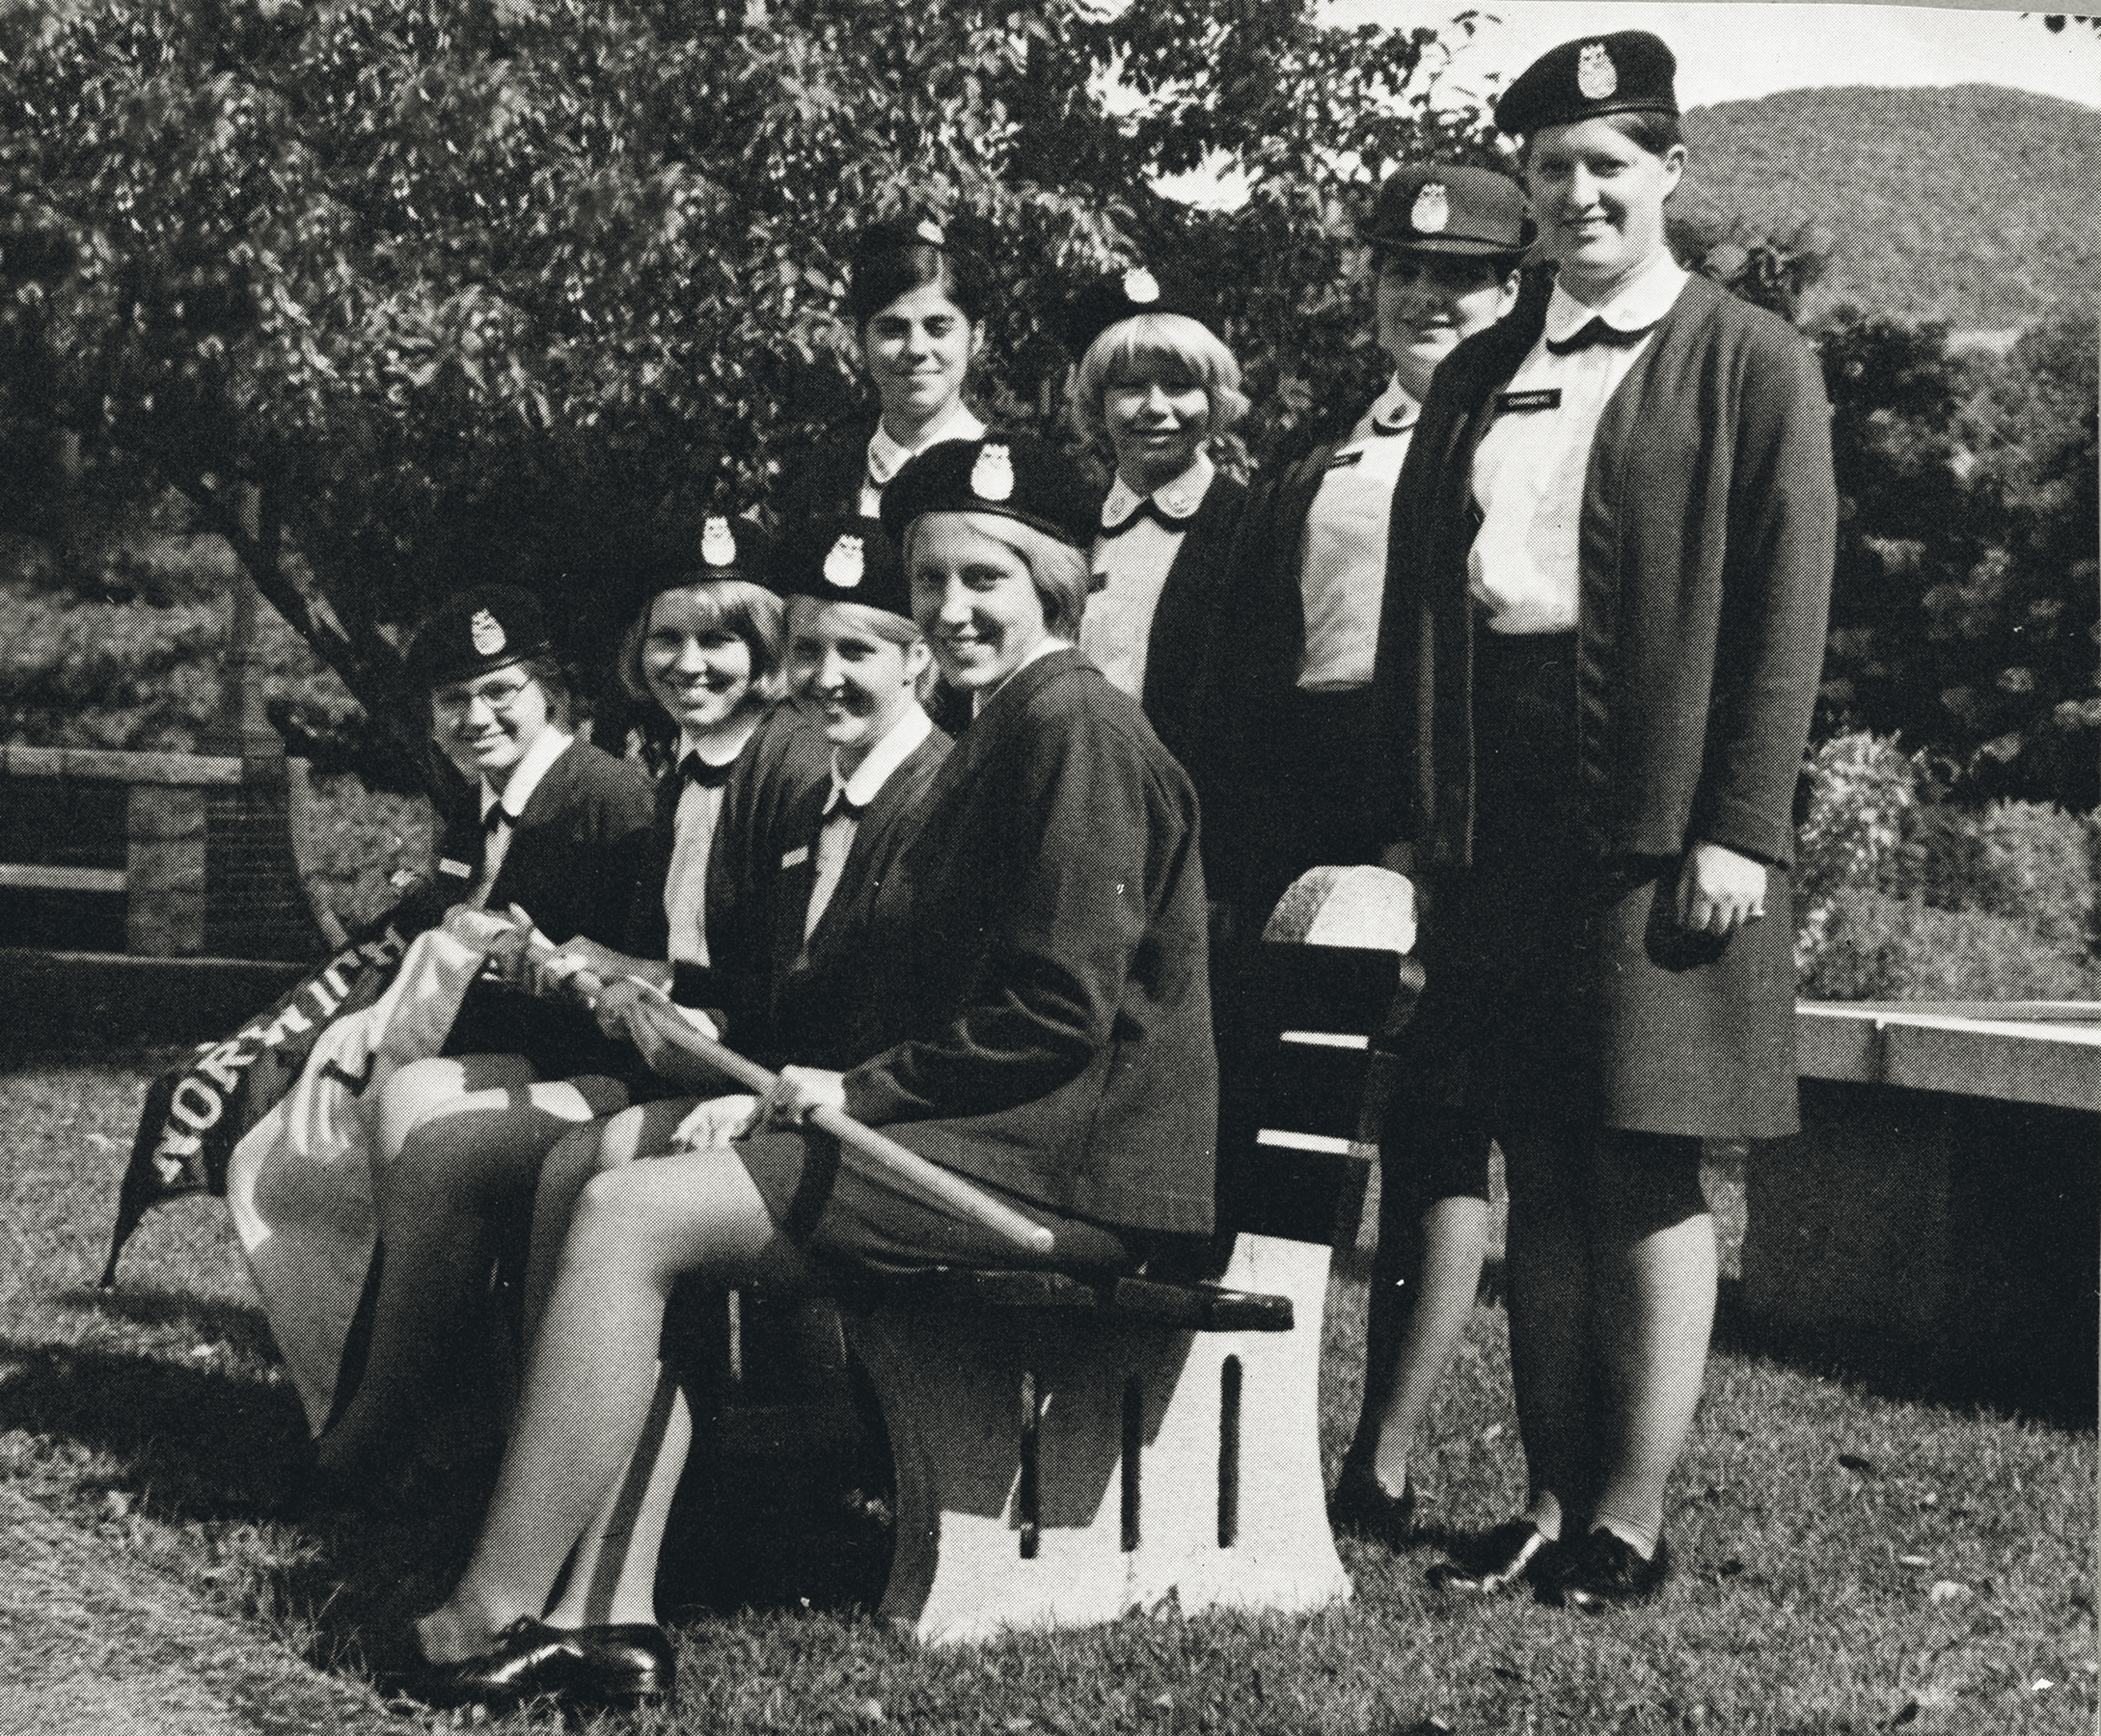 Women of Norwich: Trailblazers and Torchbearers opens August 21 and runs through December 18, 2015. The exhibit will look at women at Norwich as students and members of the Corps of Cadets and the wives of Norwich's presidents.